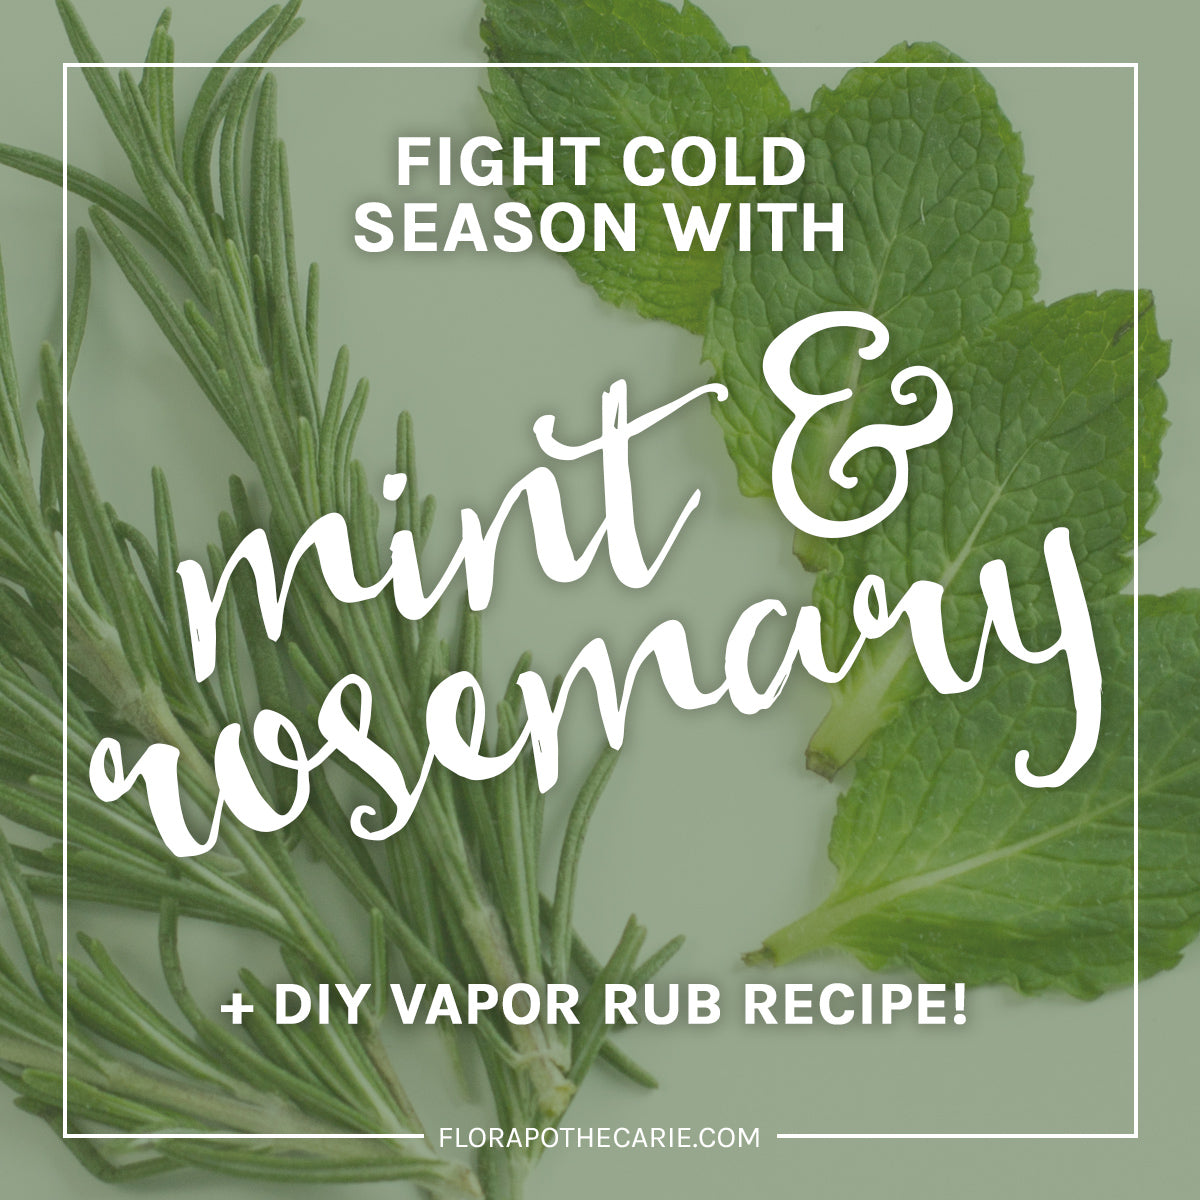 Fighting Colds Naturally With Mint Amp Rosemary A Diy Vapor Rub Tutori Florapothecarie